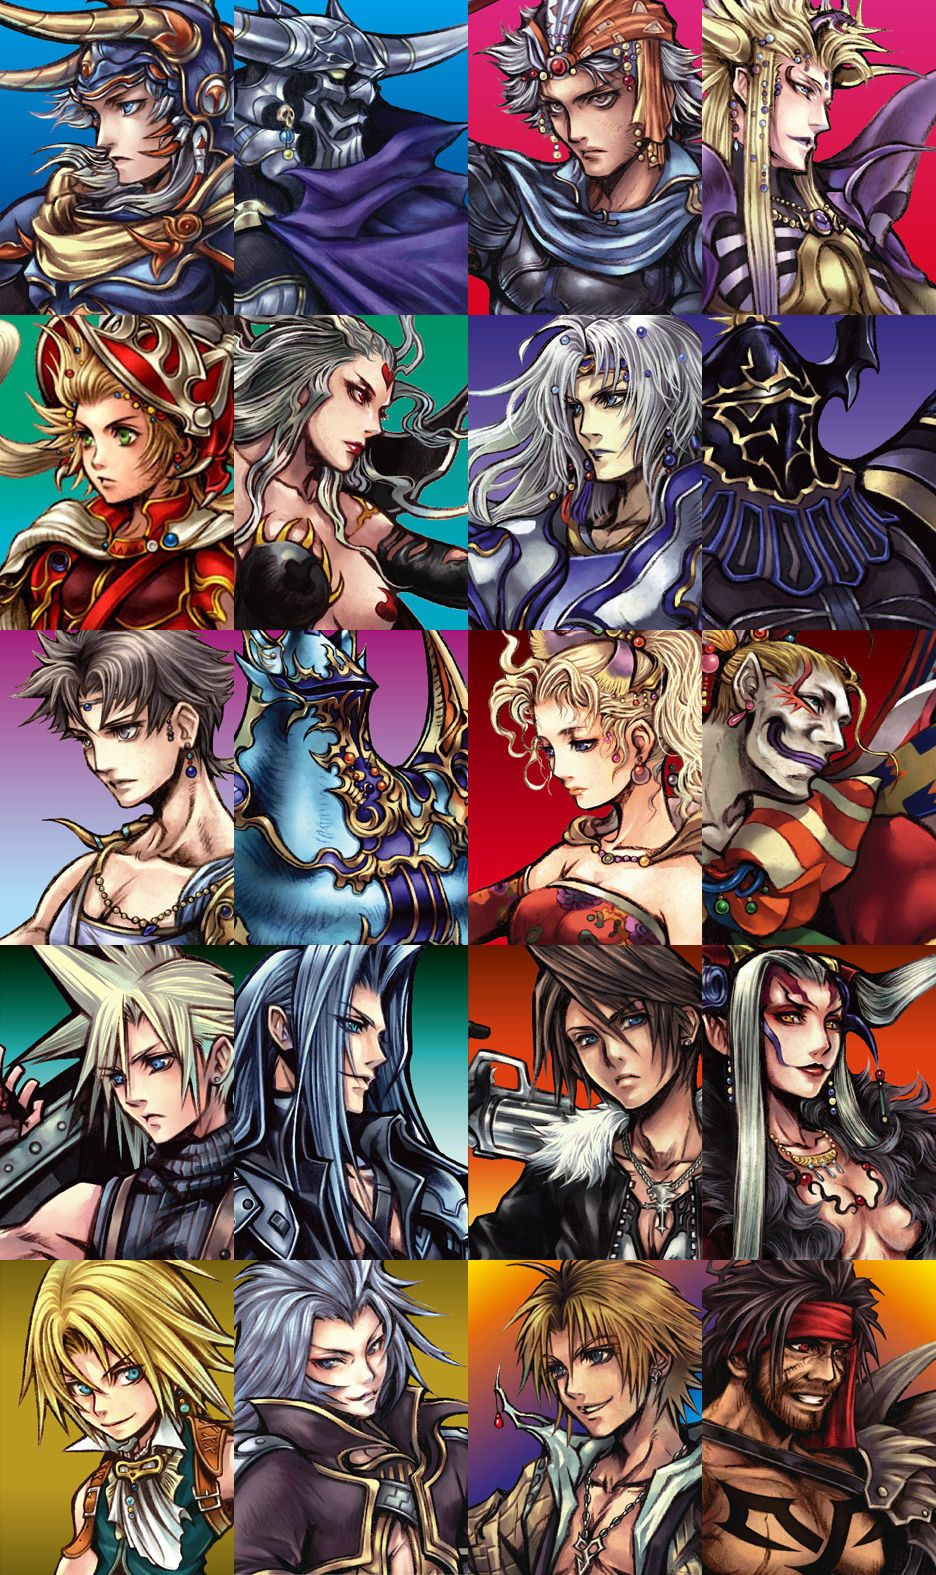 dissidia-character-images